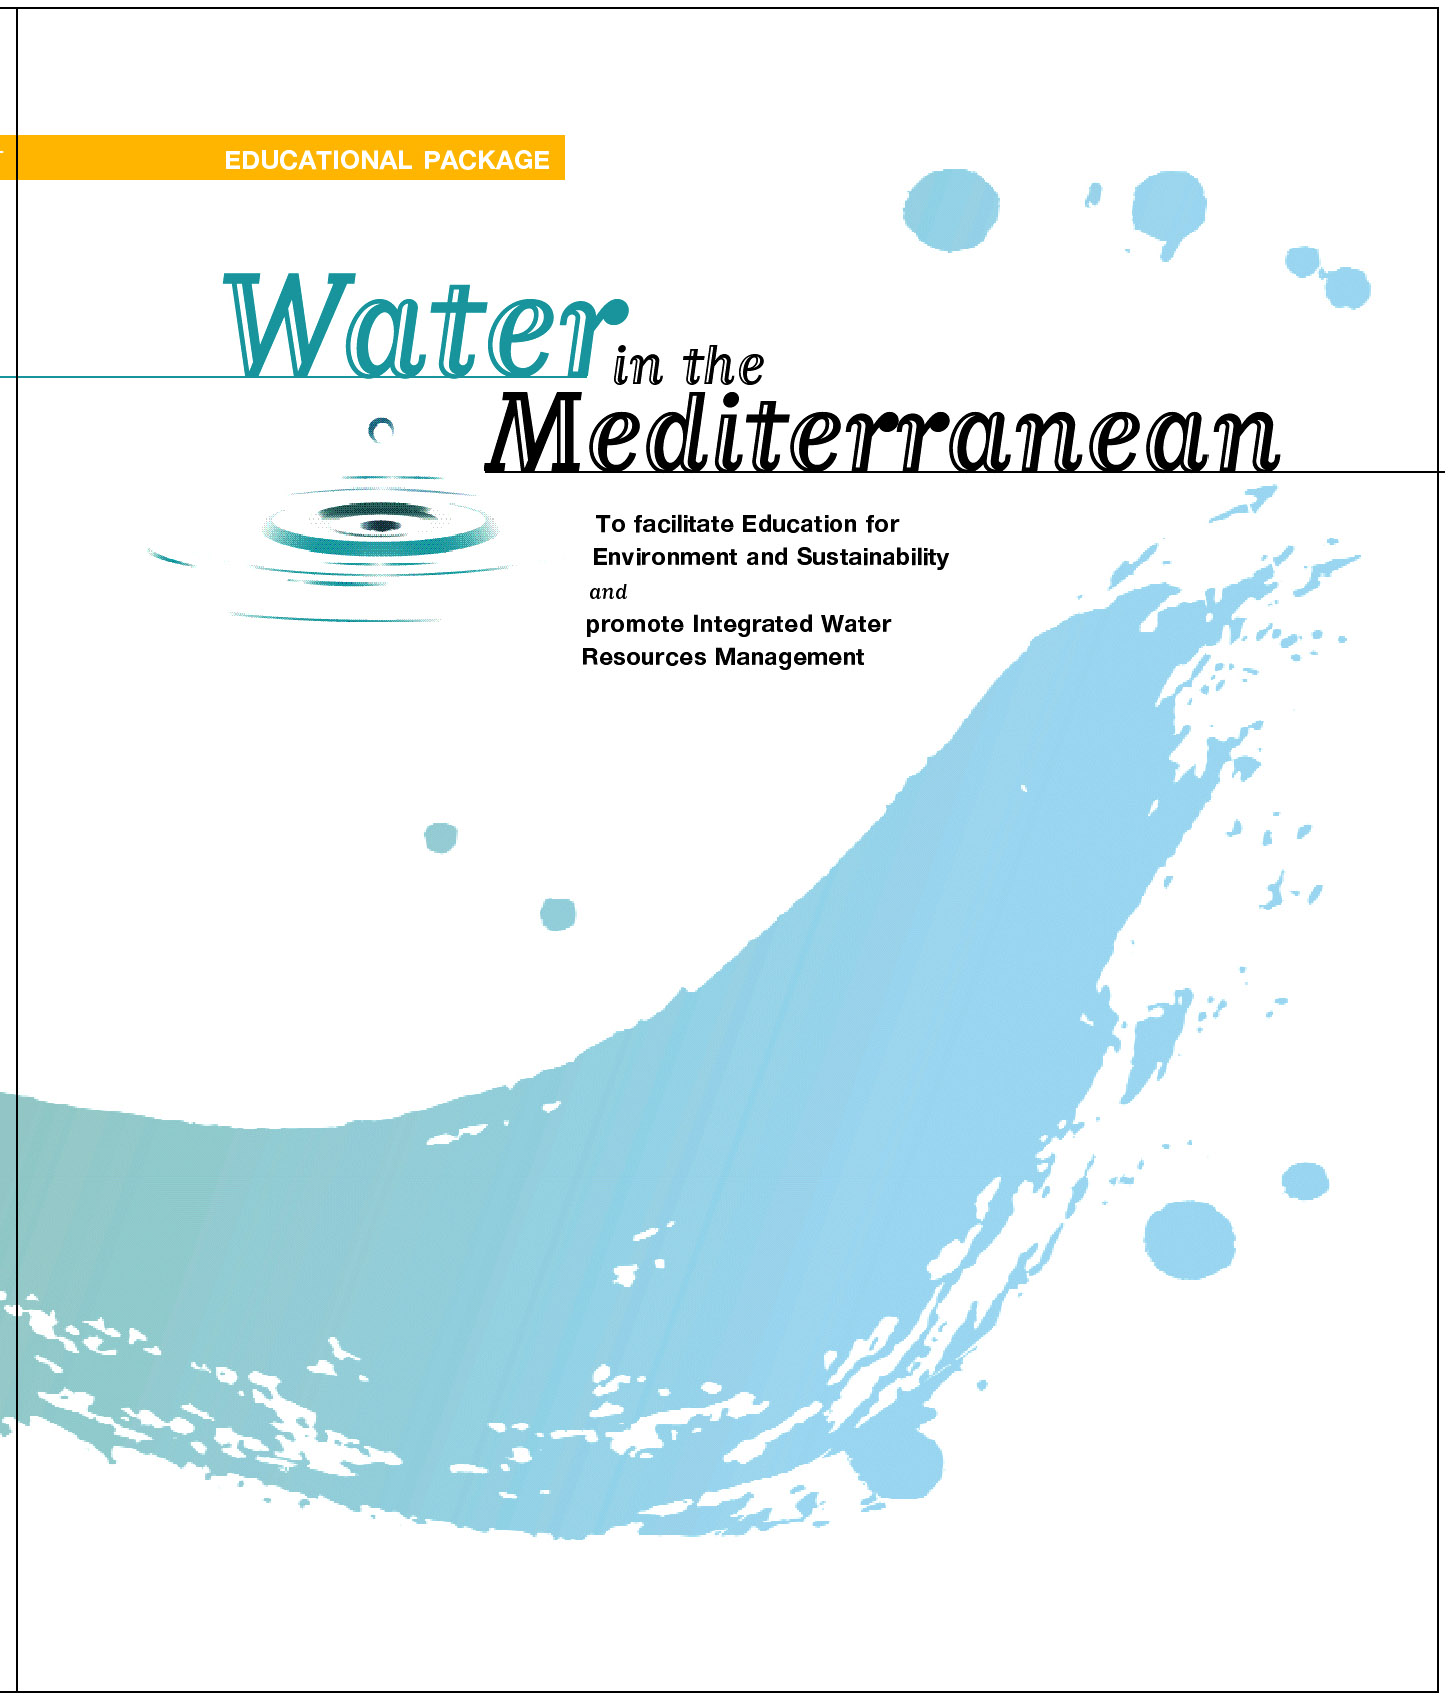 water in the meditreterranean